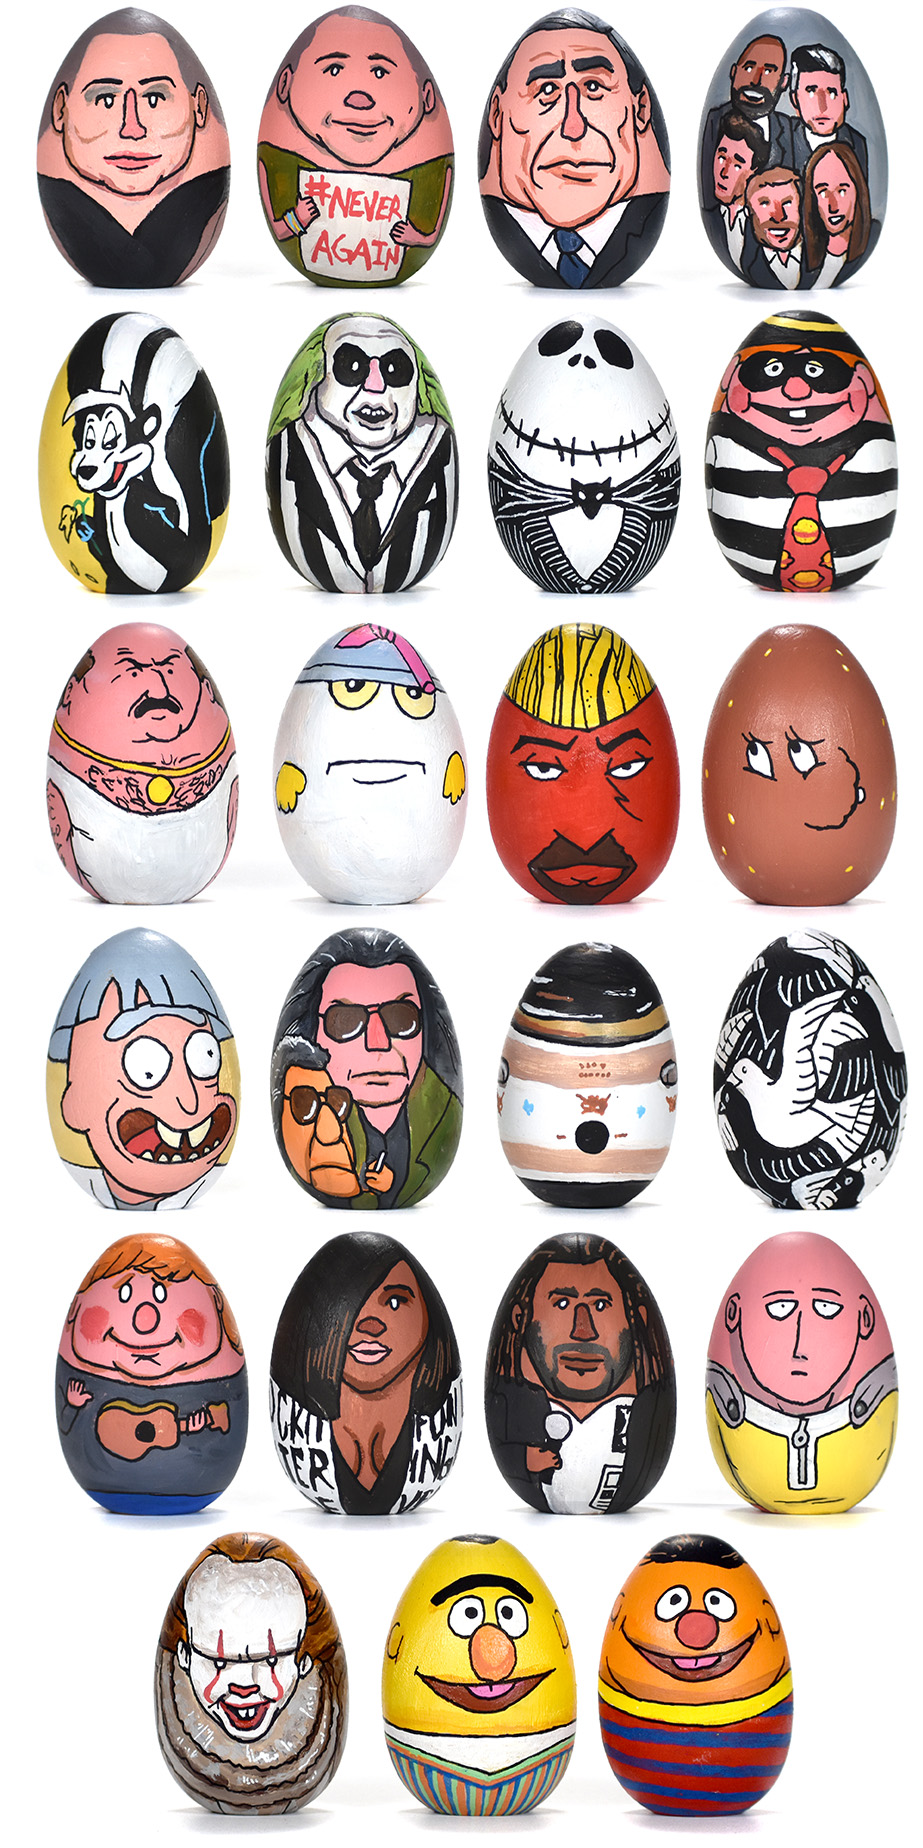 easter eggs 2018 cut up 3.jpg